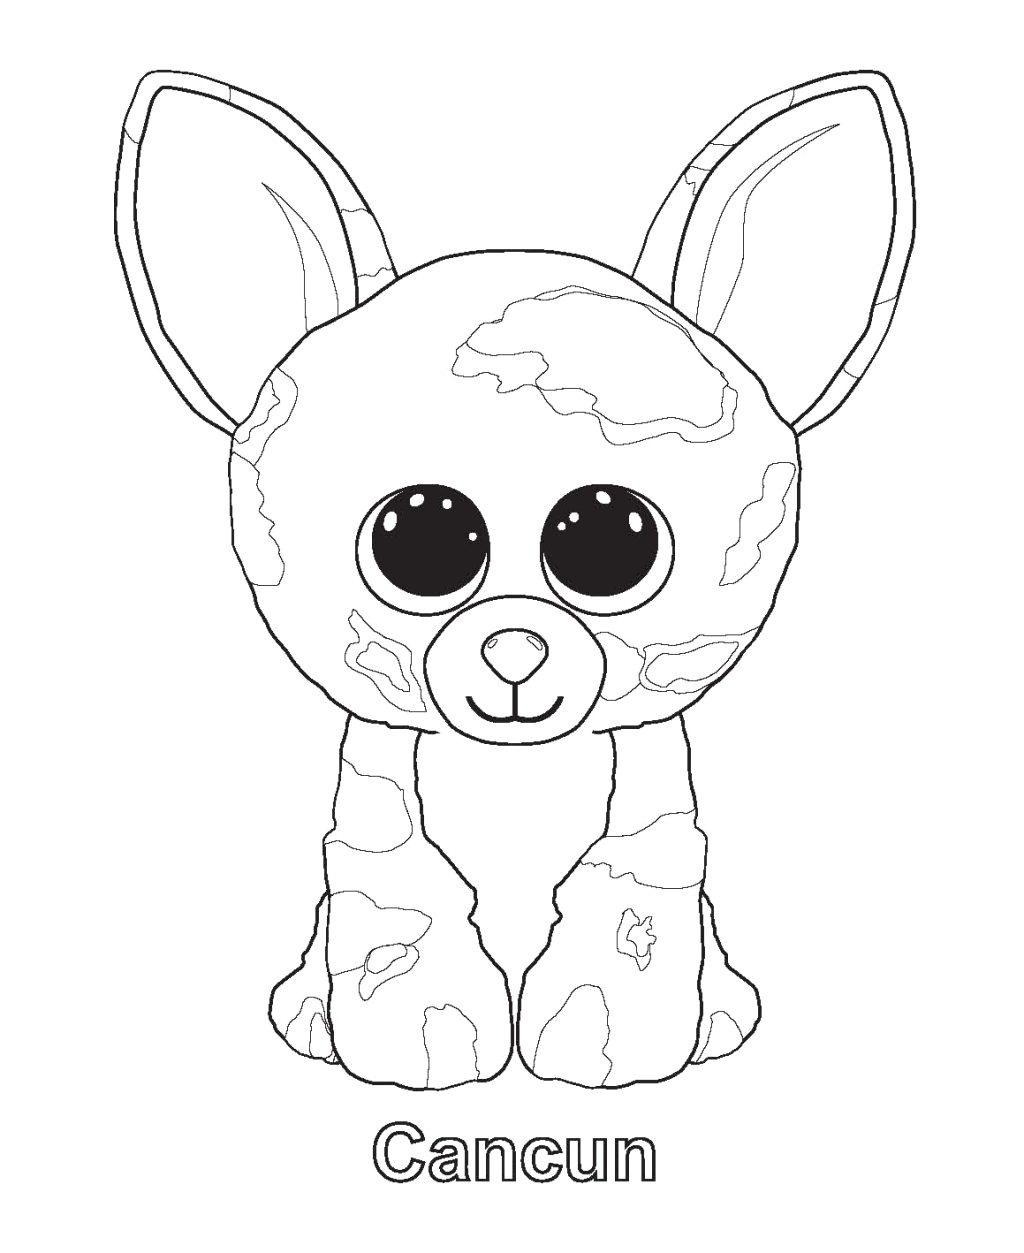 Coloring Pages ~ Beanie Boo Coloring Pages Lionbeanie Printable Dog - Free Printable Beanie Boo Coloring Pages